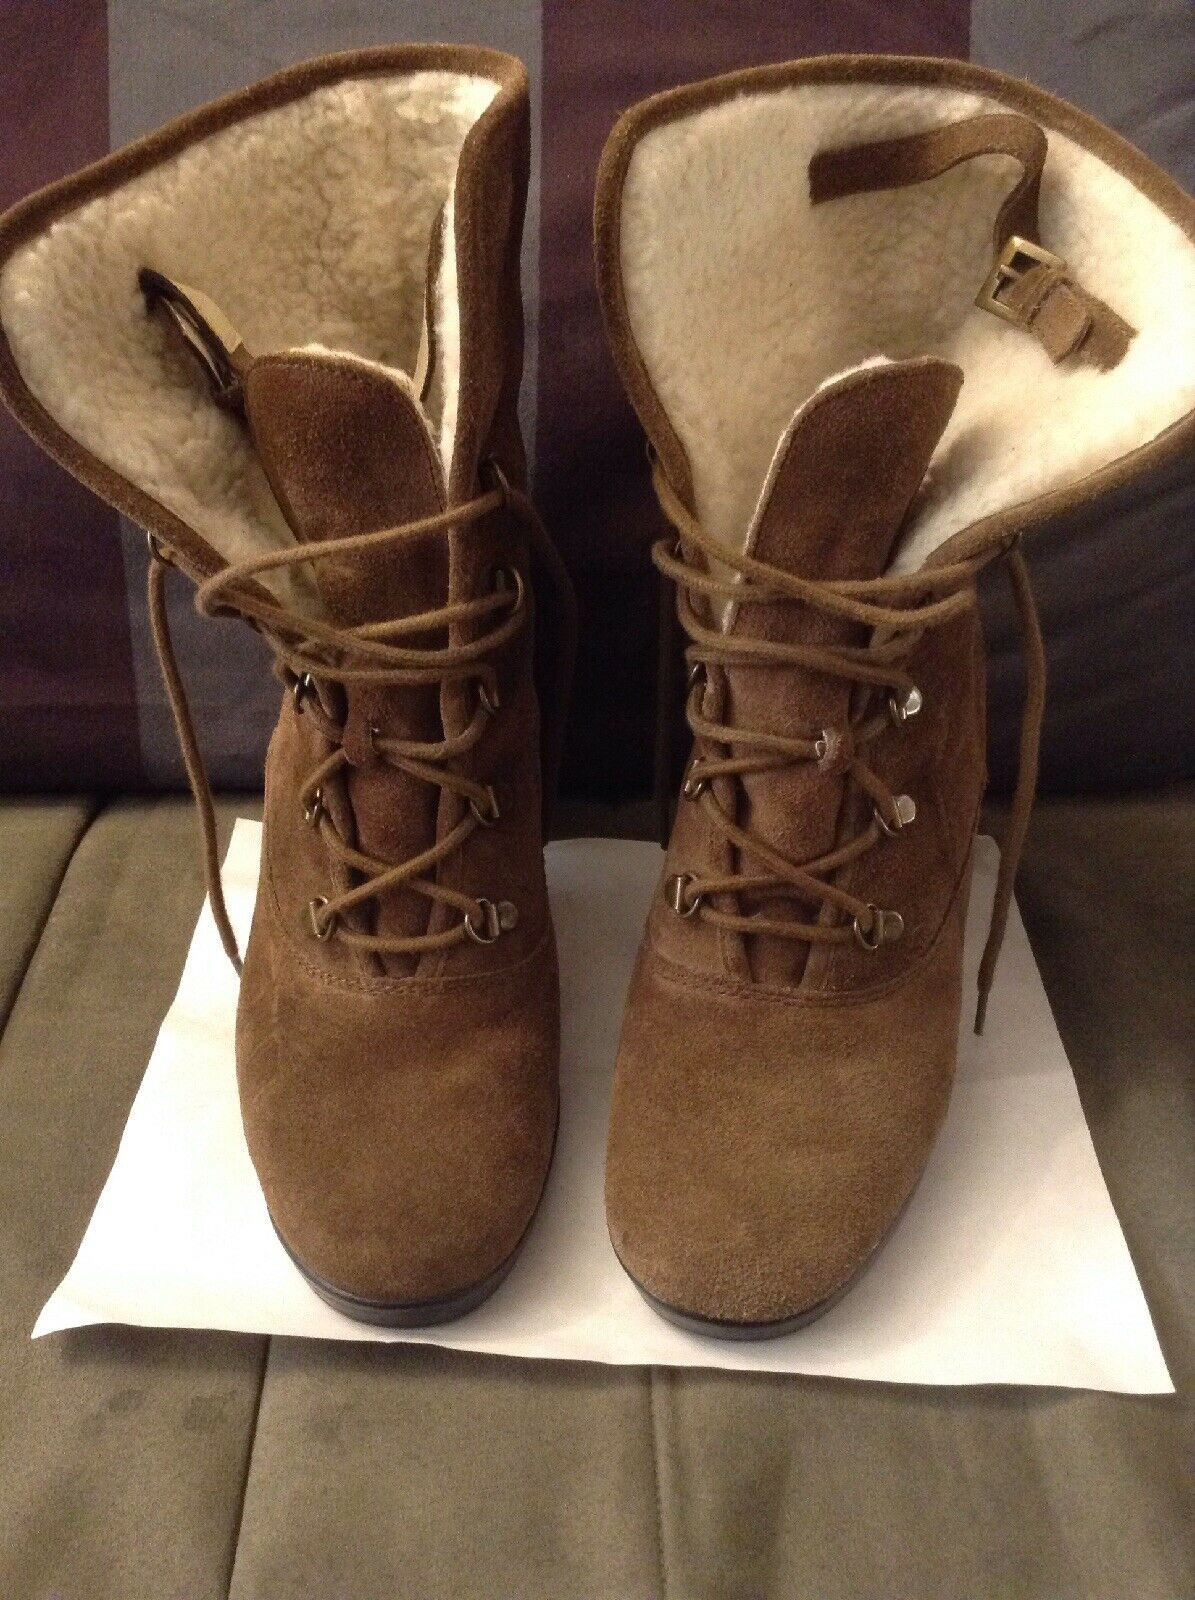 Aerosoles Women Ankle Boots Size 8.5M Brown